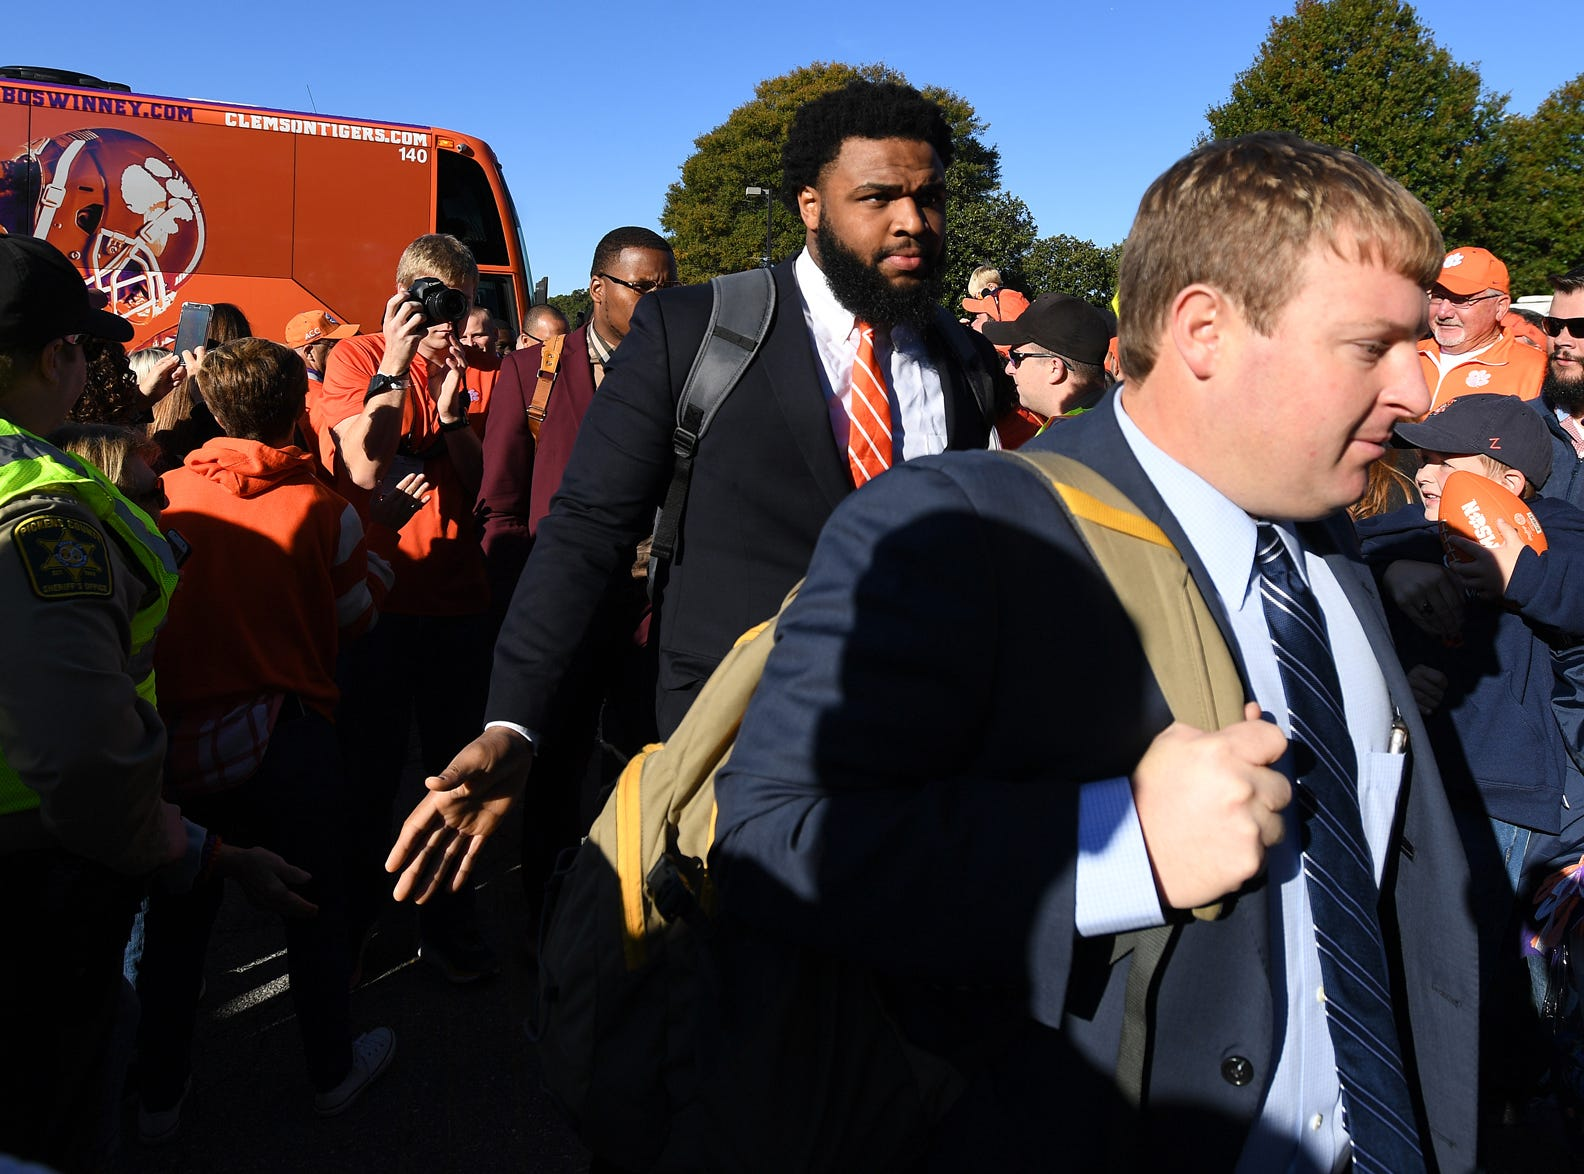 Clemson defensive lineman Christian Wilkins takes part in Tiger Walk before the Tiger's game against Louisville Saturday, November 3, 2018 at Clemson's Memorial Stadium.